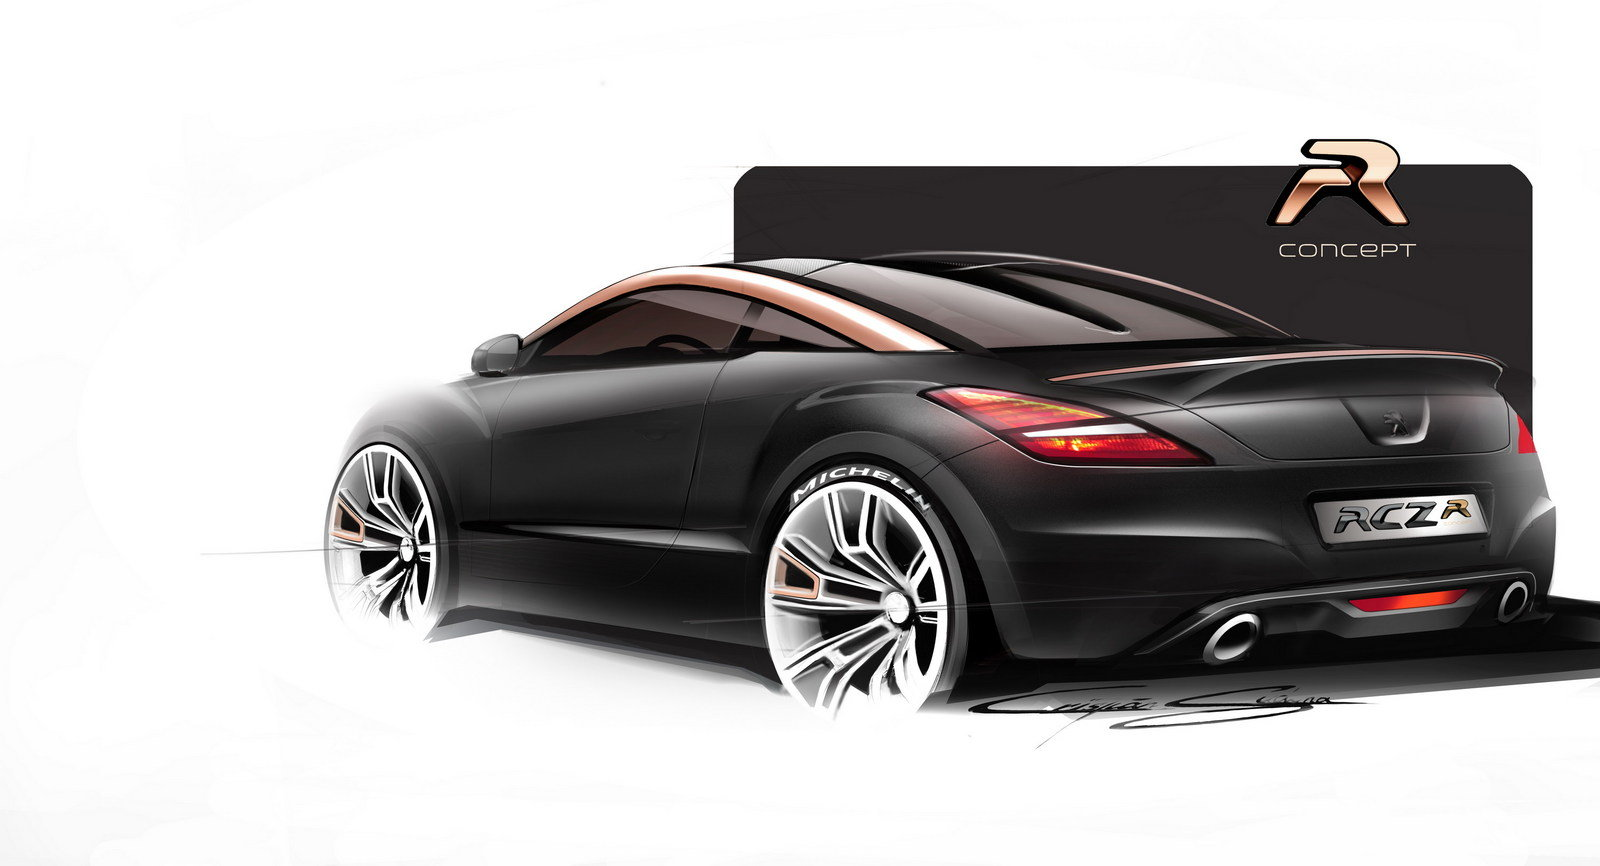 2012 peugeot rcz r concept picture 472917 car review top speed. Black Bedroom Furniture Sets. Home Design Ideas